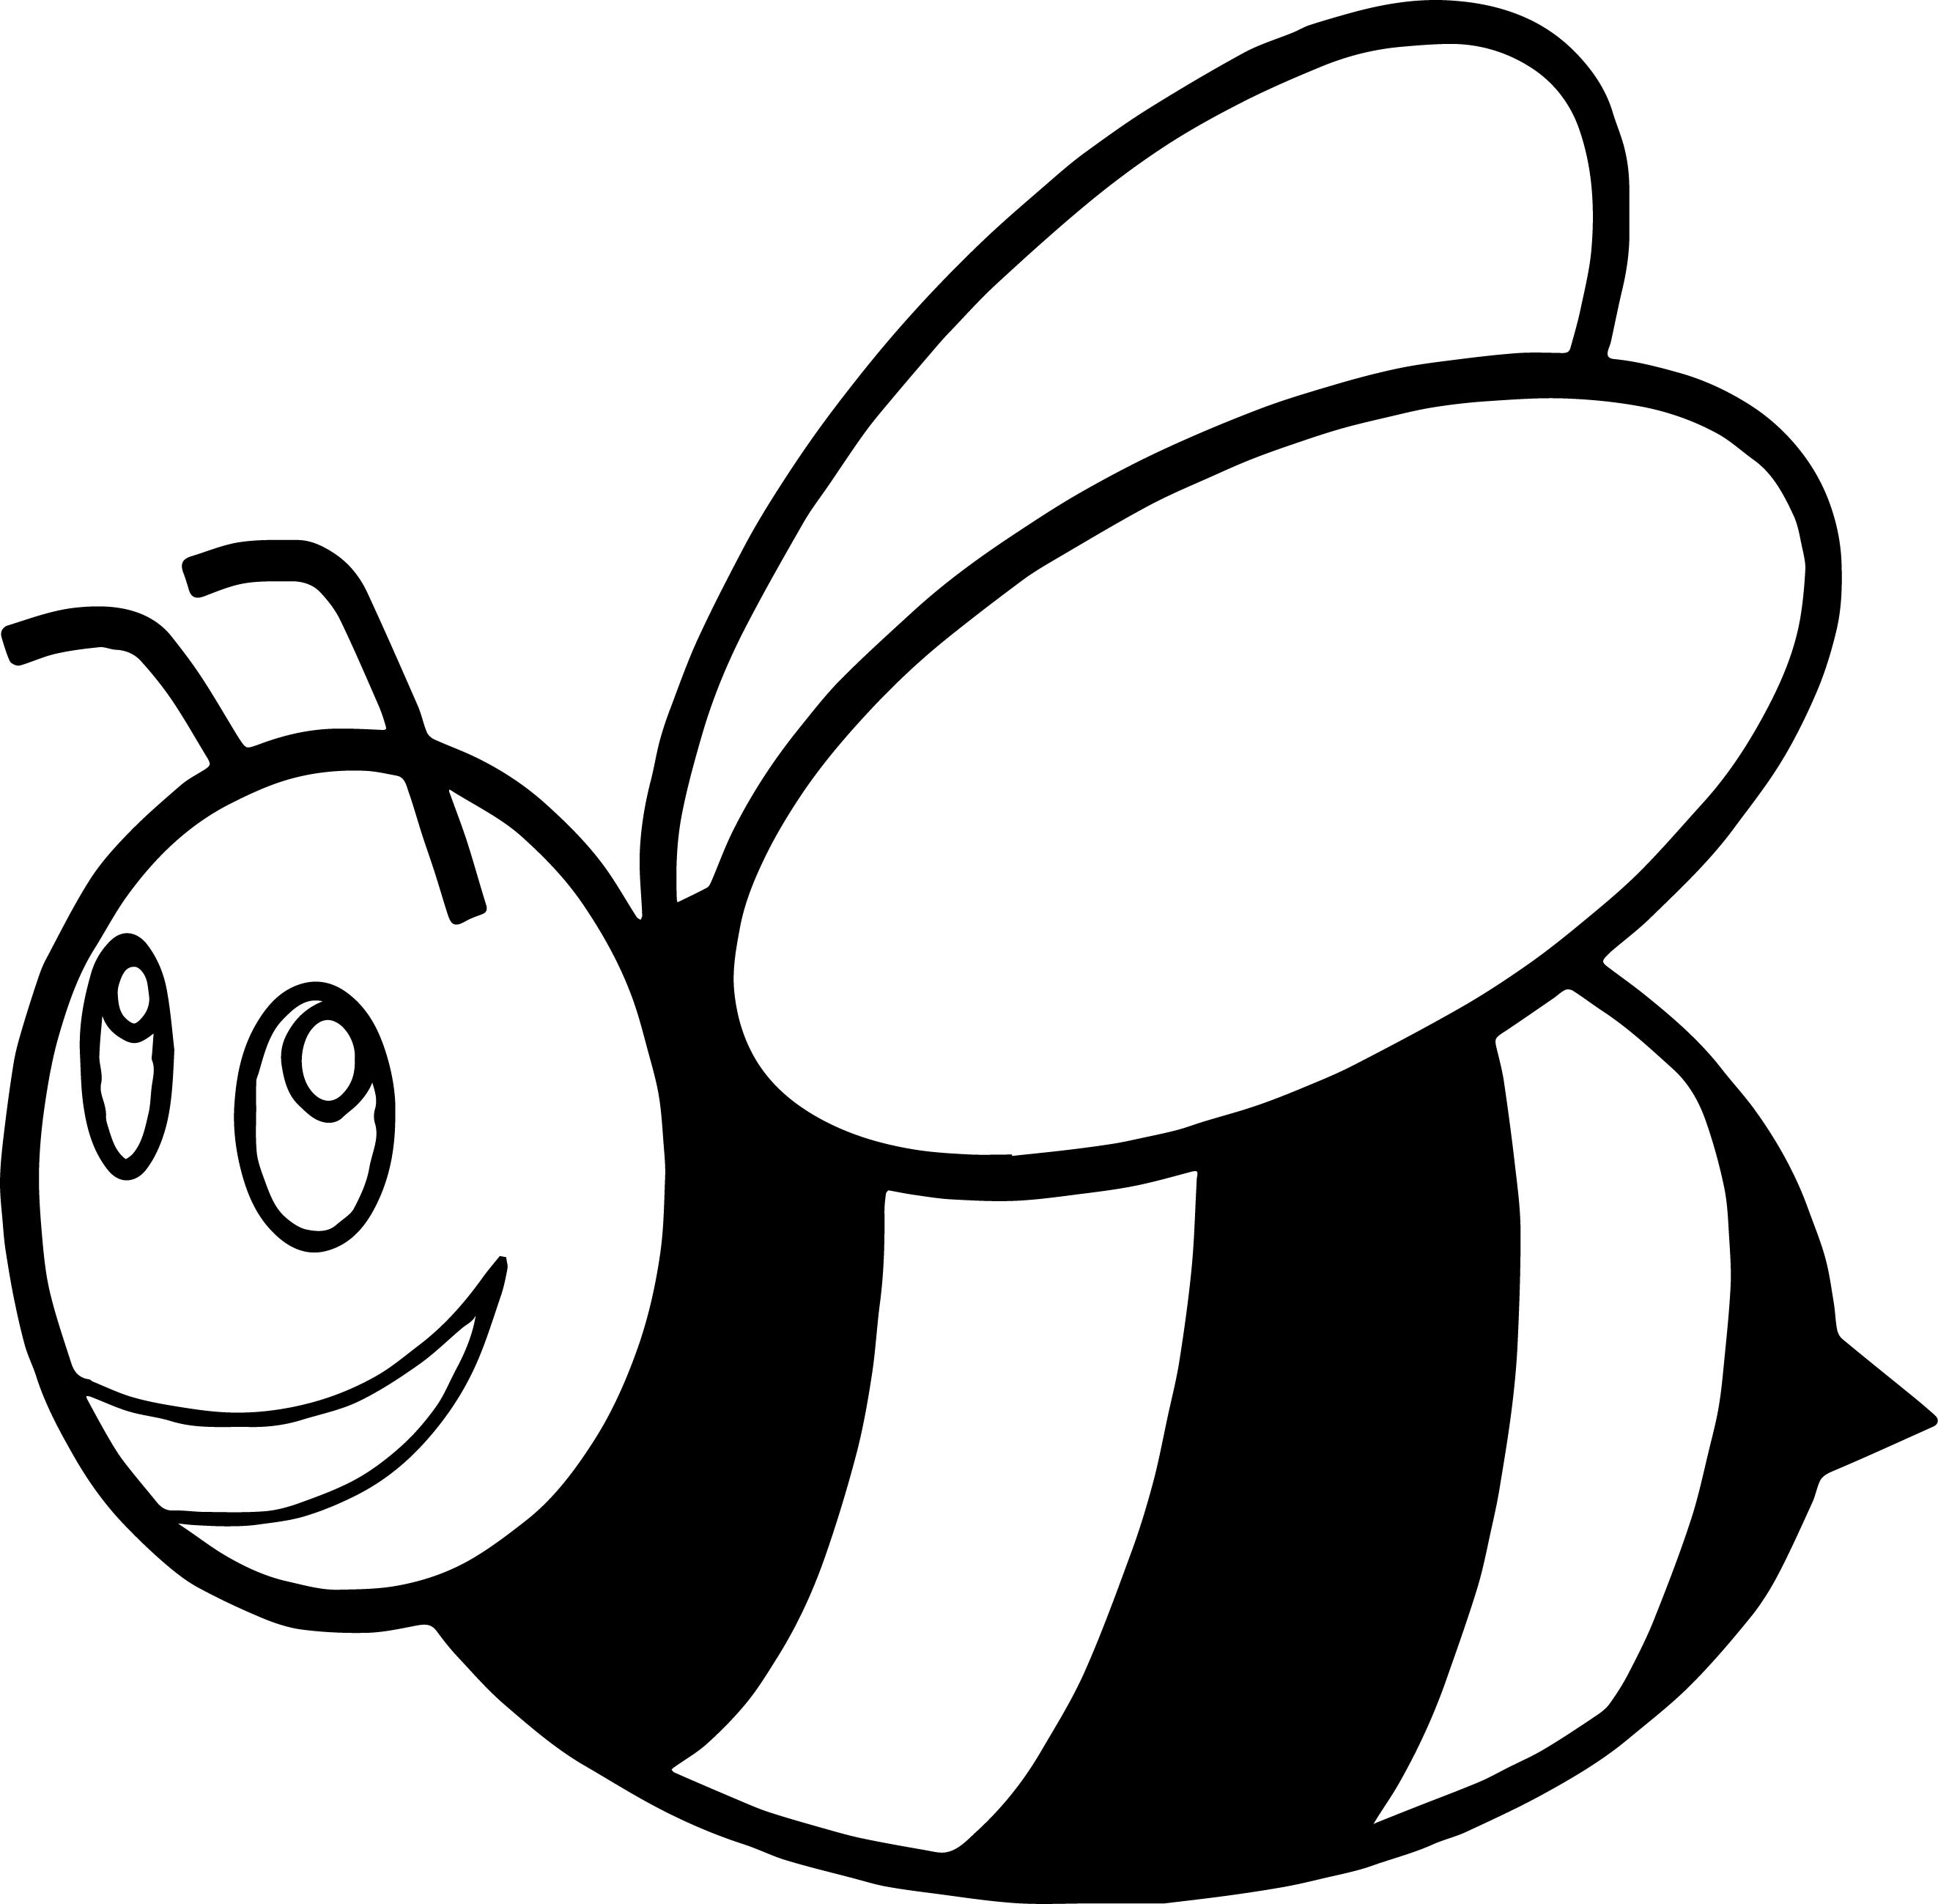 Bee pattern. Use the printable outline for crafts, creating